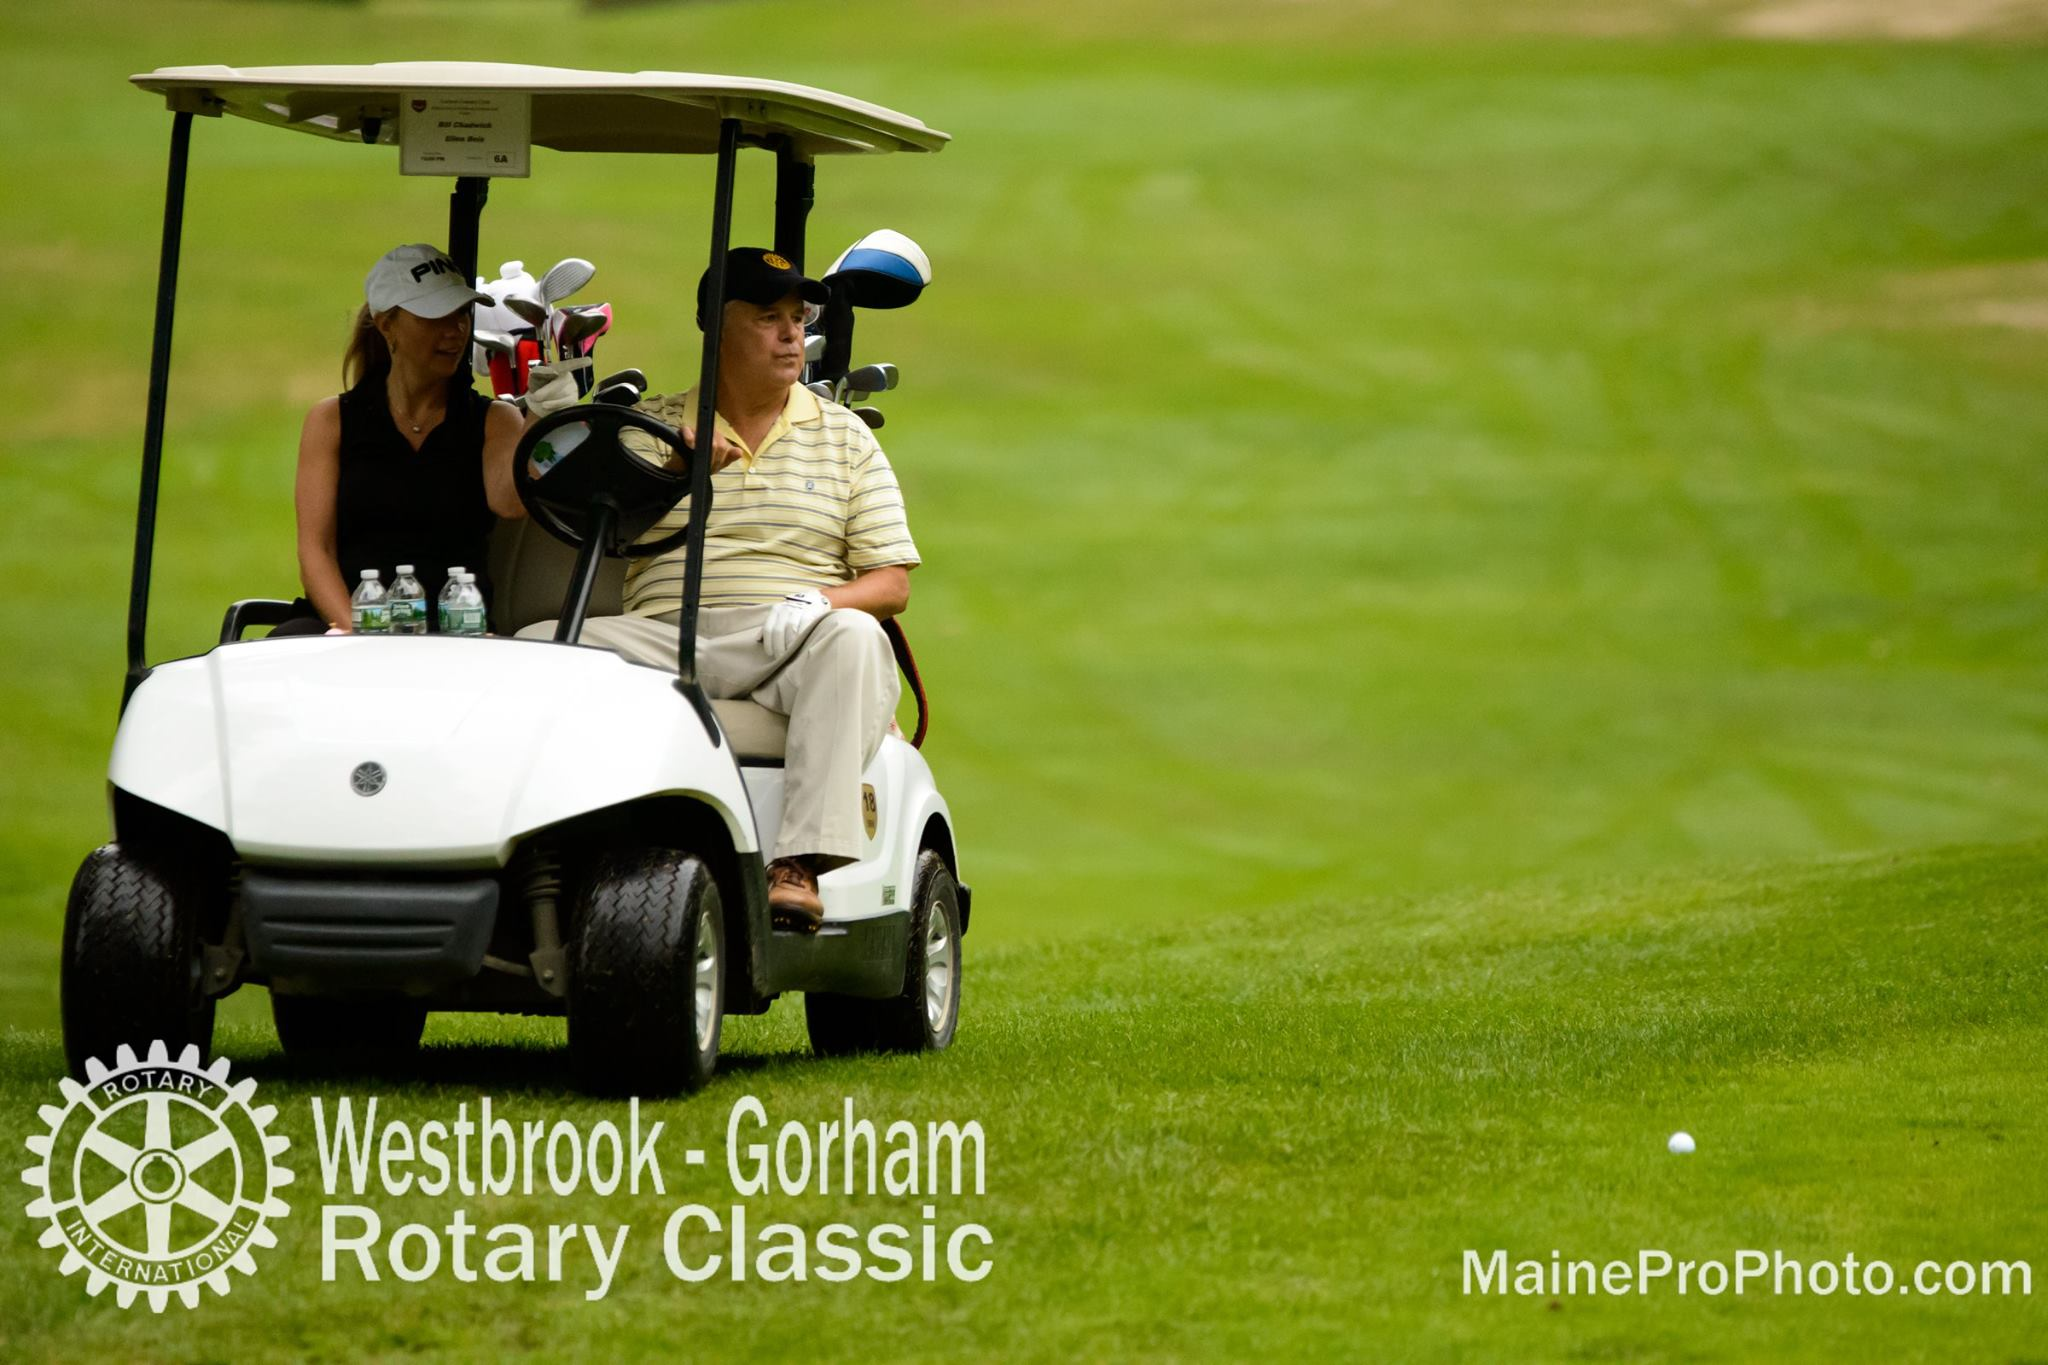 25th Annual Rotary Classic Golf Tournament gallery image #11